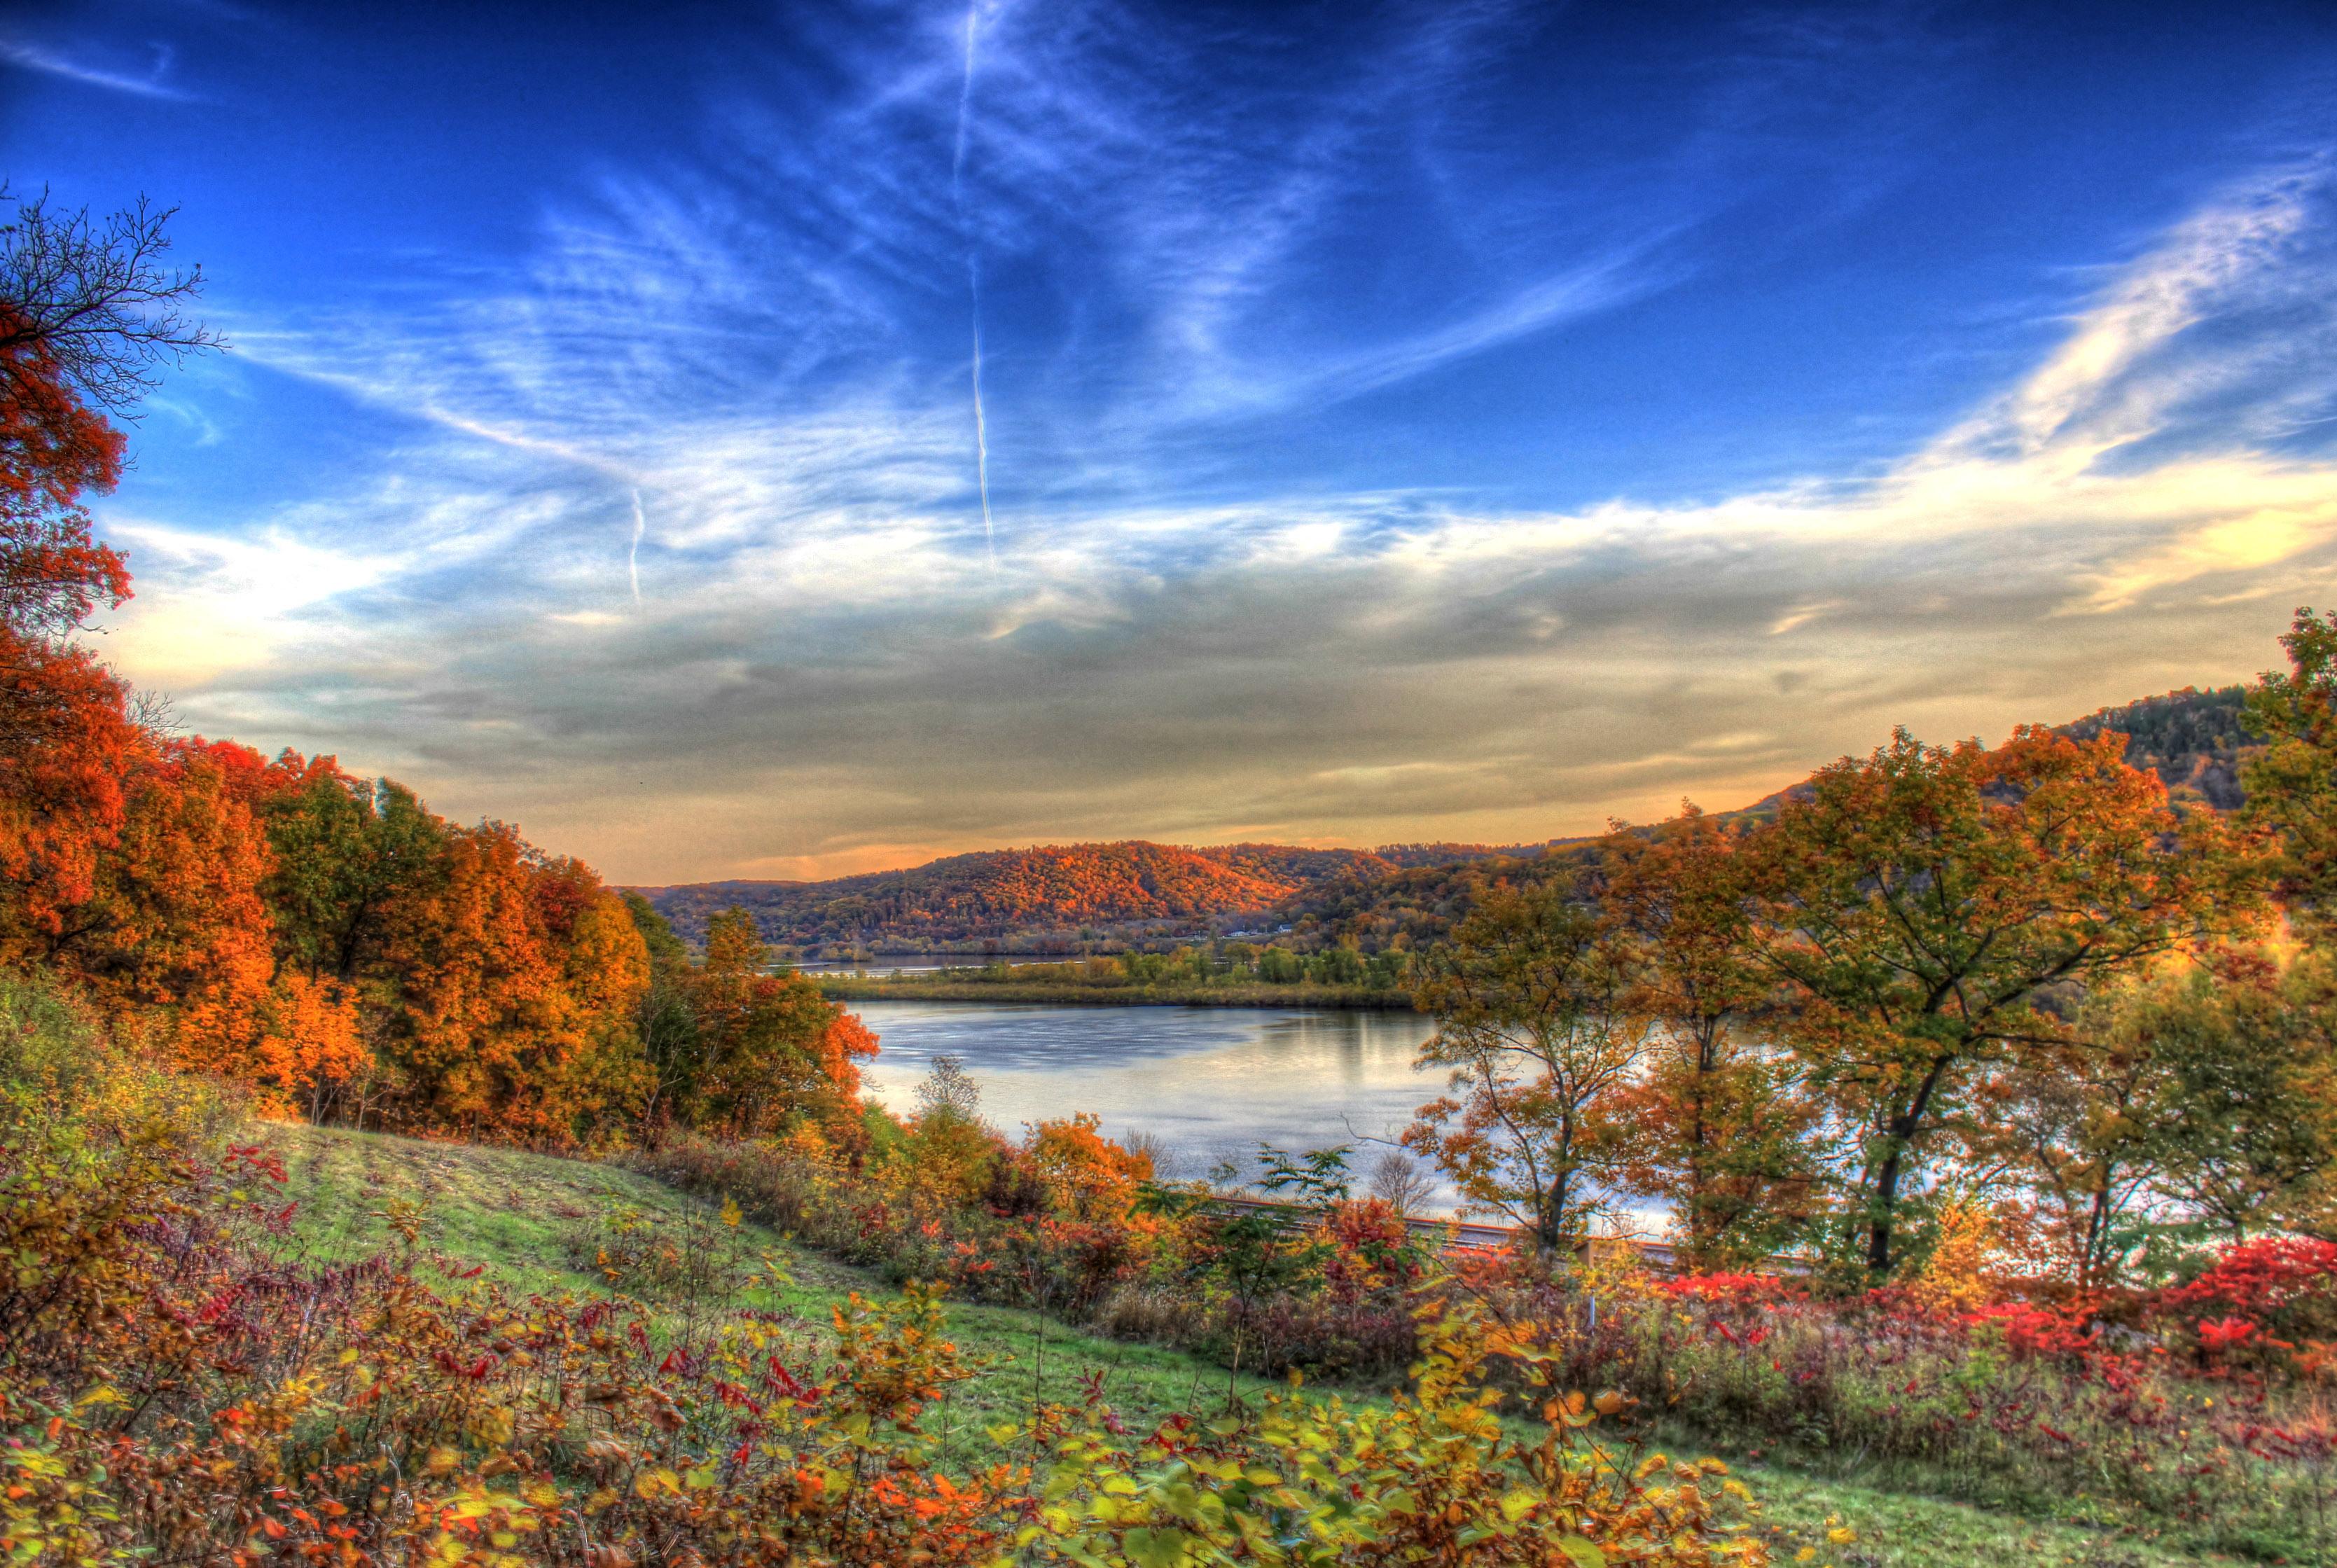 3d Wallpaper Maker Scenic River Valley In Perrot State Park Wisconsin Image